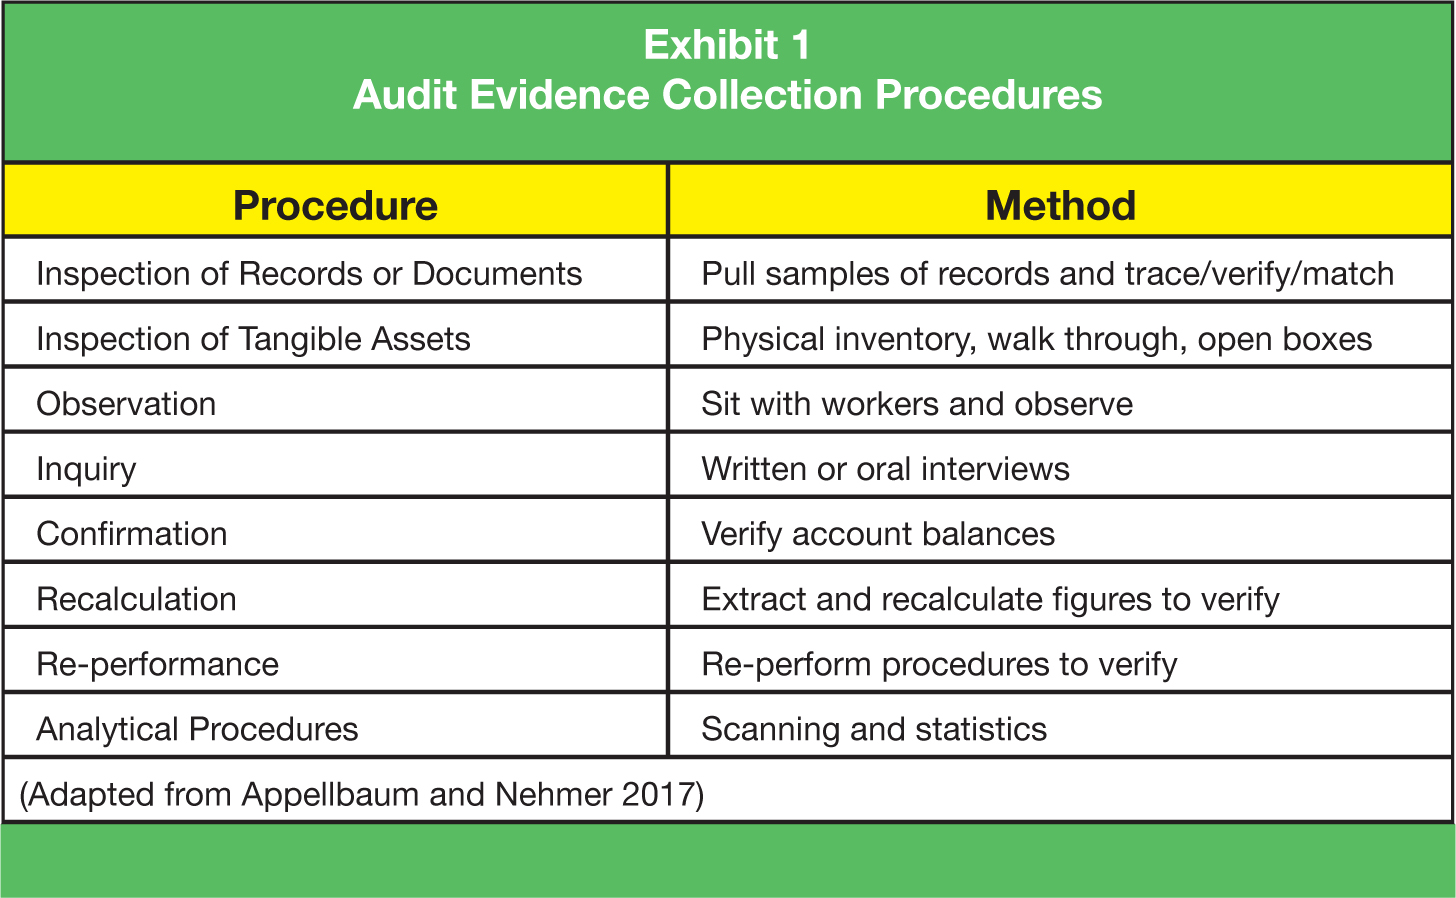 Procedure; Method Inspection of Records or Documents; Pull samples of records and trace/verify/match Inspection of Tangible Assets; Physical inventory, walk through, open boxes Observation; Sit with workers and observe Inquiry; Written or oral interviews Confirmation; Verify account balances Recalculation; Extract and recalculate figures to verify Re-performance; Re-perform procedures to verify Analytical Procedures; Scanning and statistics (Adapted from Appellbaum and Nehmer 2017)